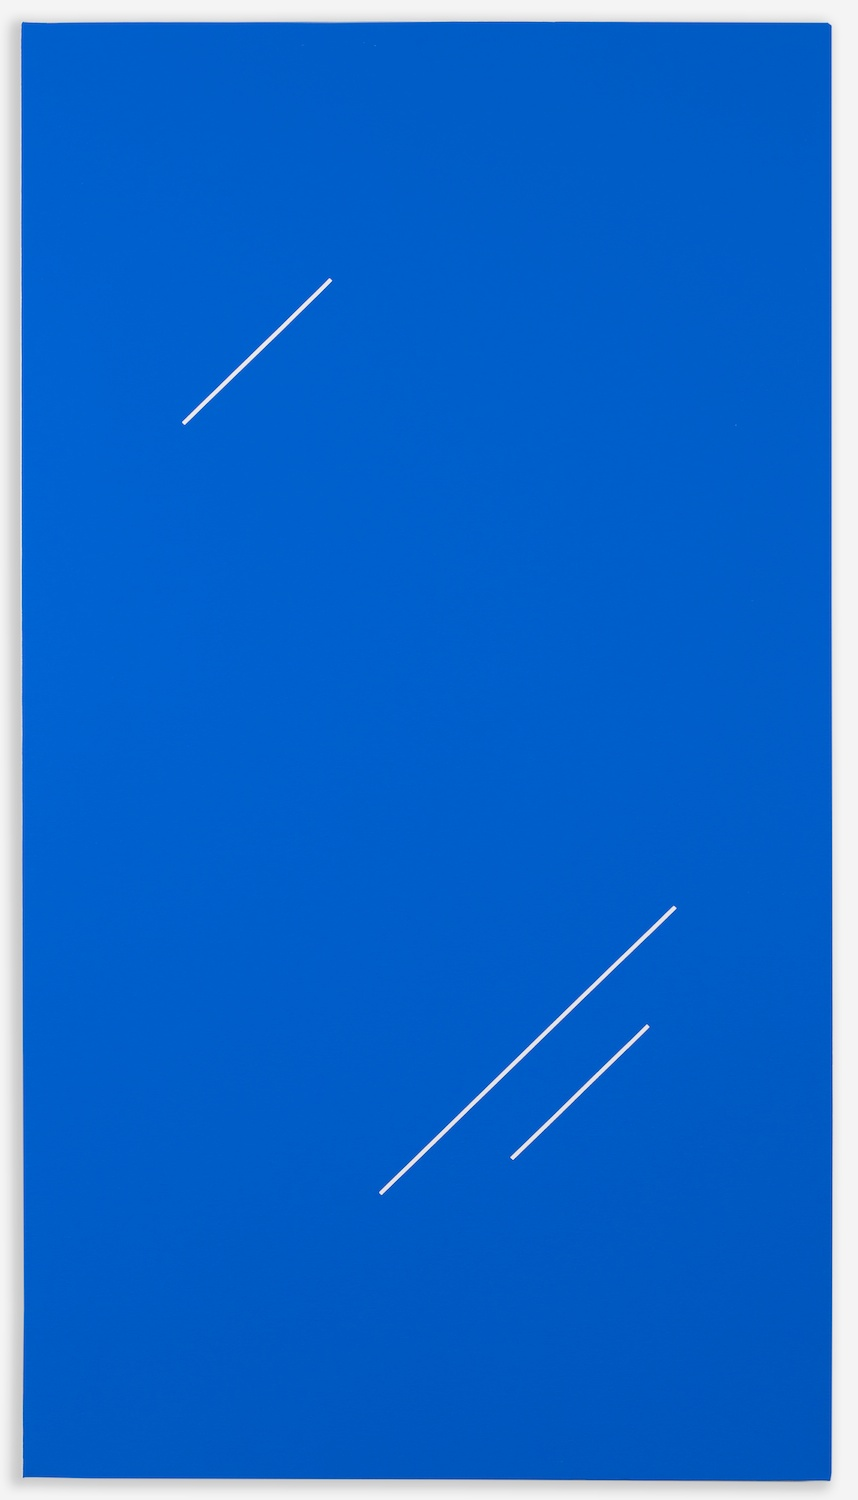 "Paul Cowan BCEAUSE THE SKY IS BULE  2013 Chroma-key blue paint on canvas  48"" x 26""  PC093"